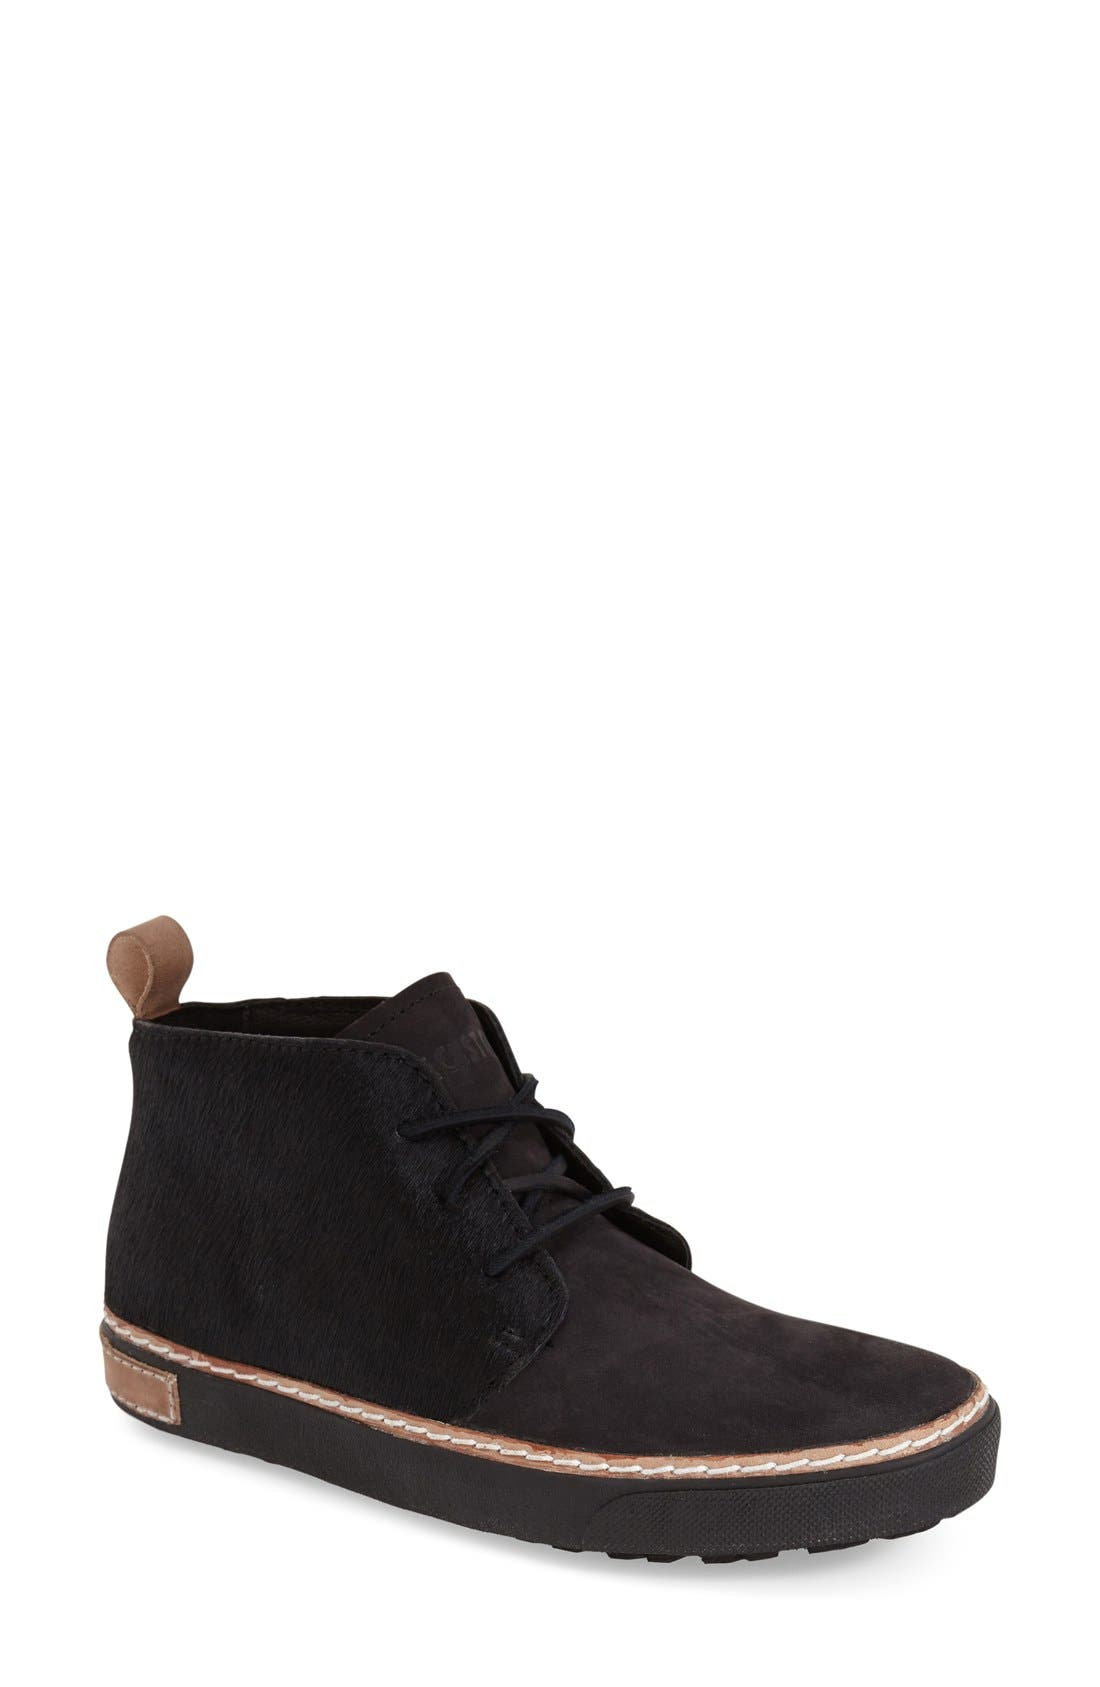 Genuine Calf Hair Chukka Sneaker,                         Main,                         color, Black Leather